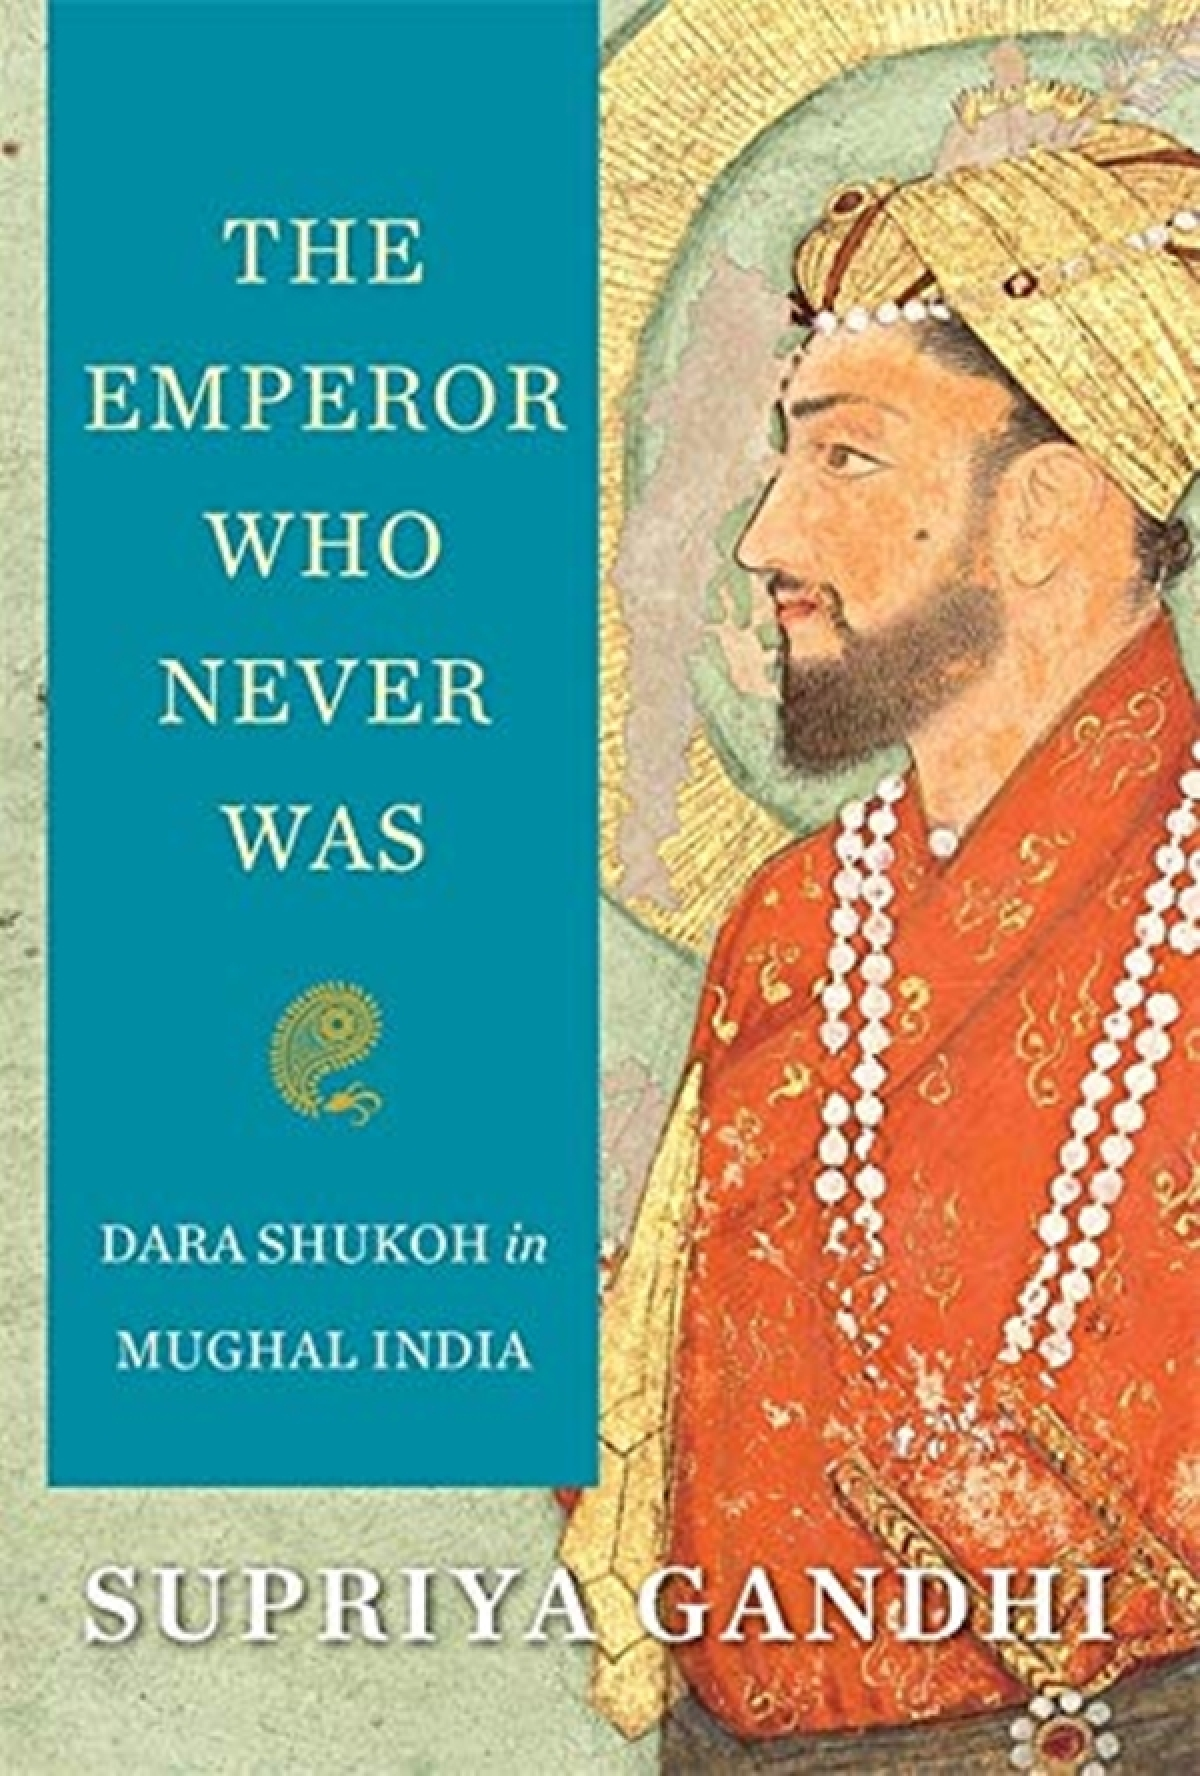 Book Review: Dara Shukoh's sad story